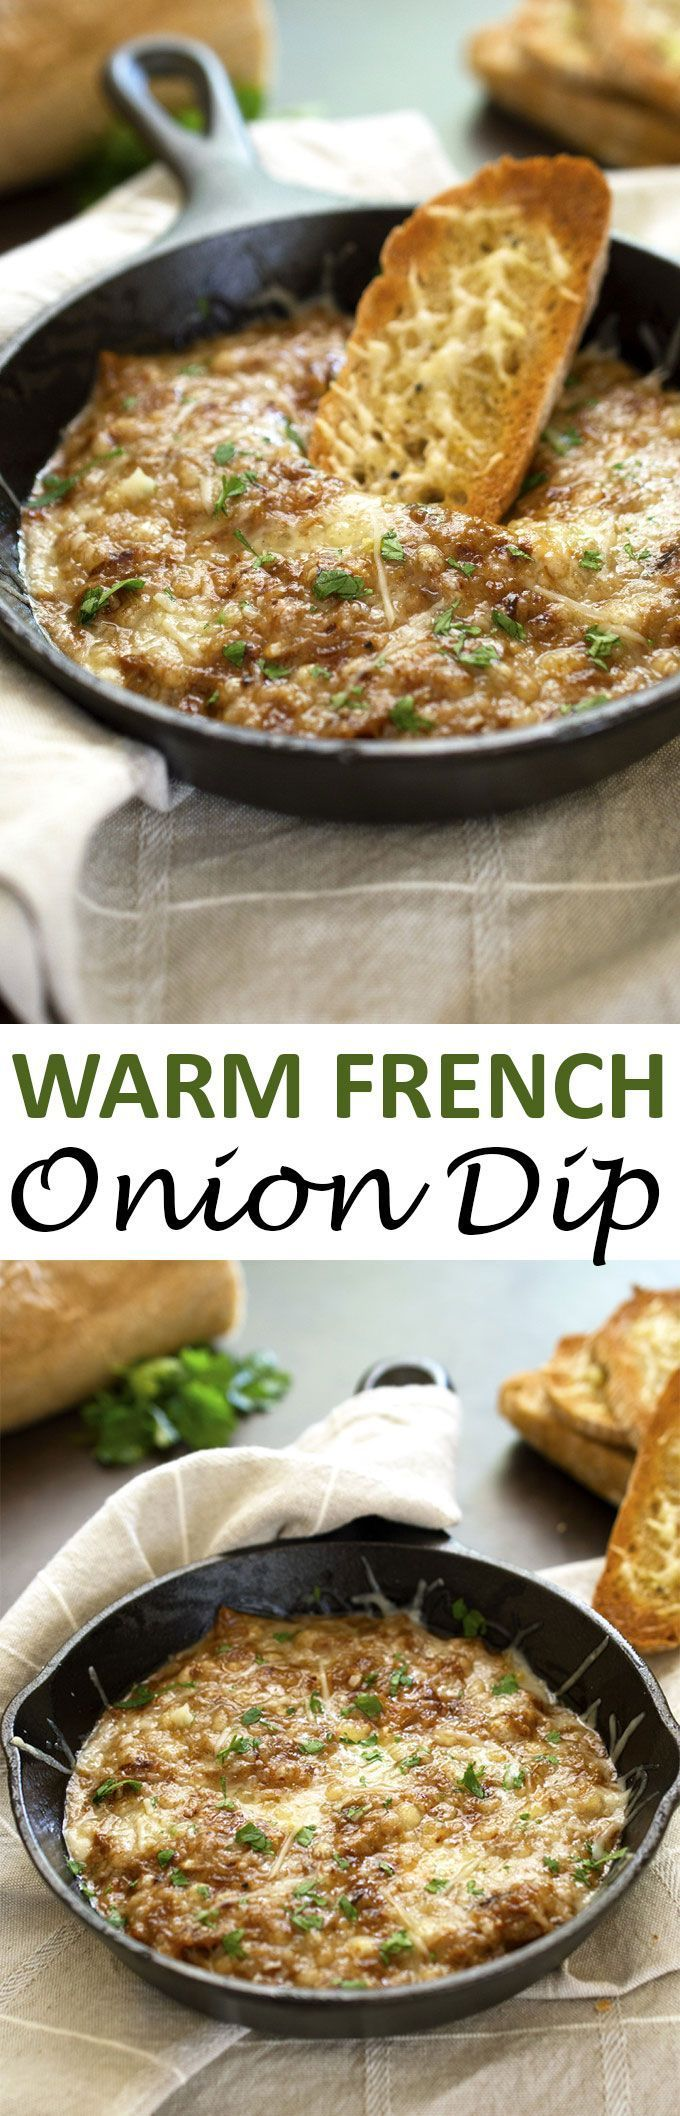 Creamy Warm French Onion Dip made with caramelized onions, beef consomme, cream…